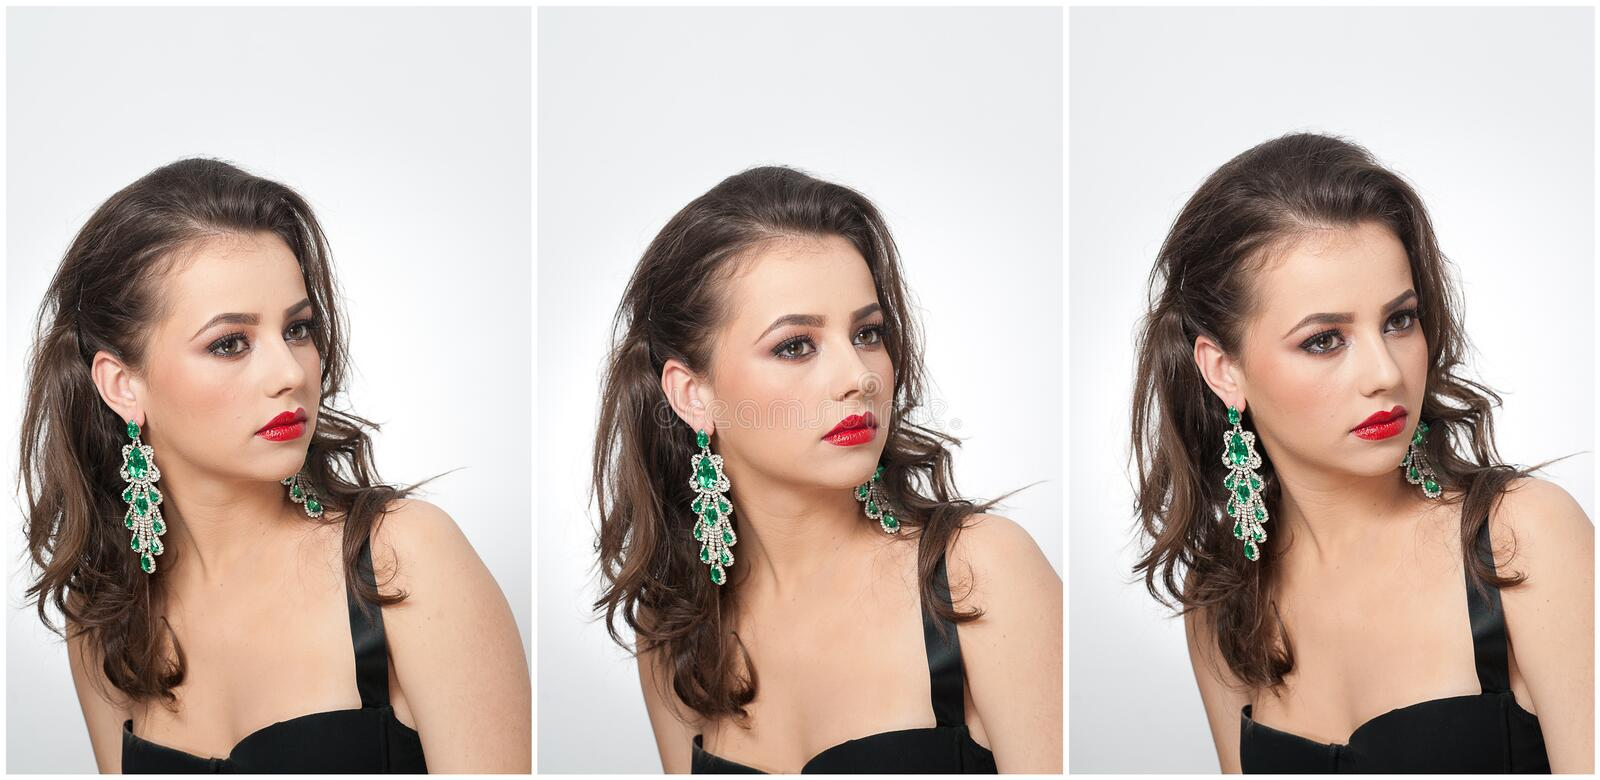 Hairstyle and make up - beautiful female art portrait with earrings. Elegance. Genuine natural brunette with jewelry royalty free stock photography